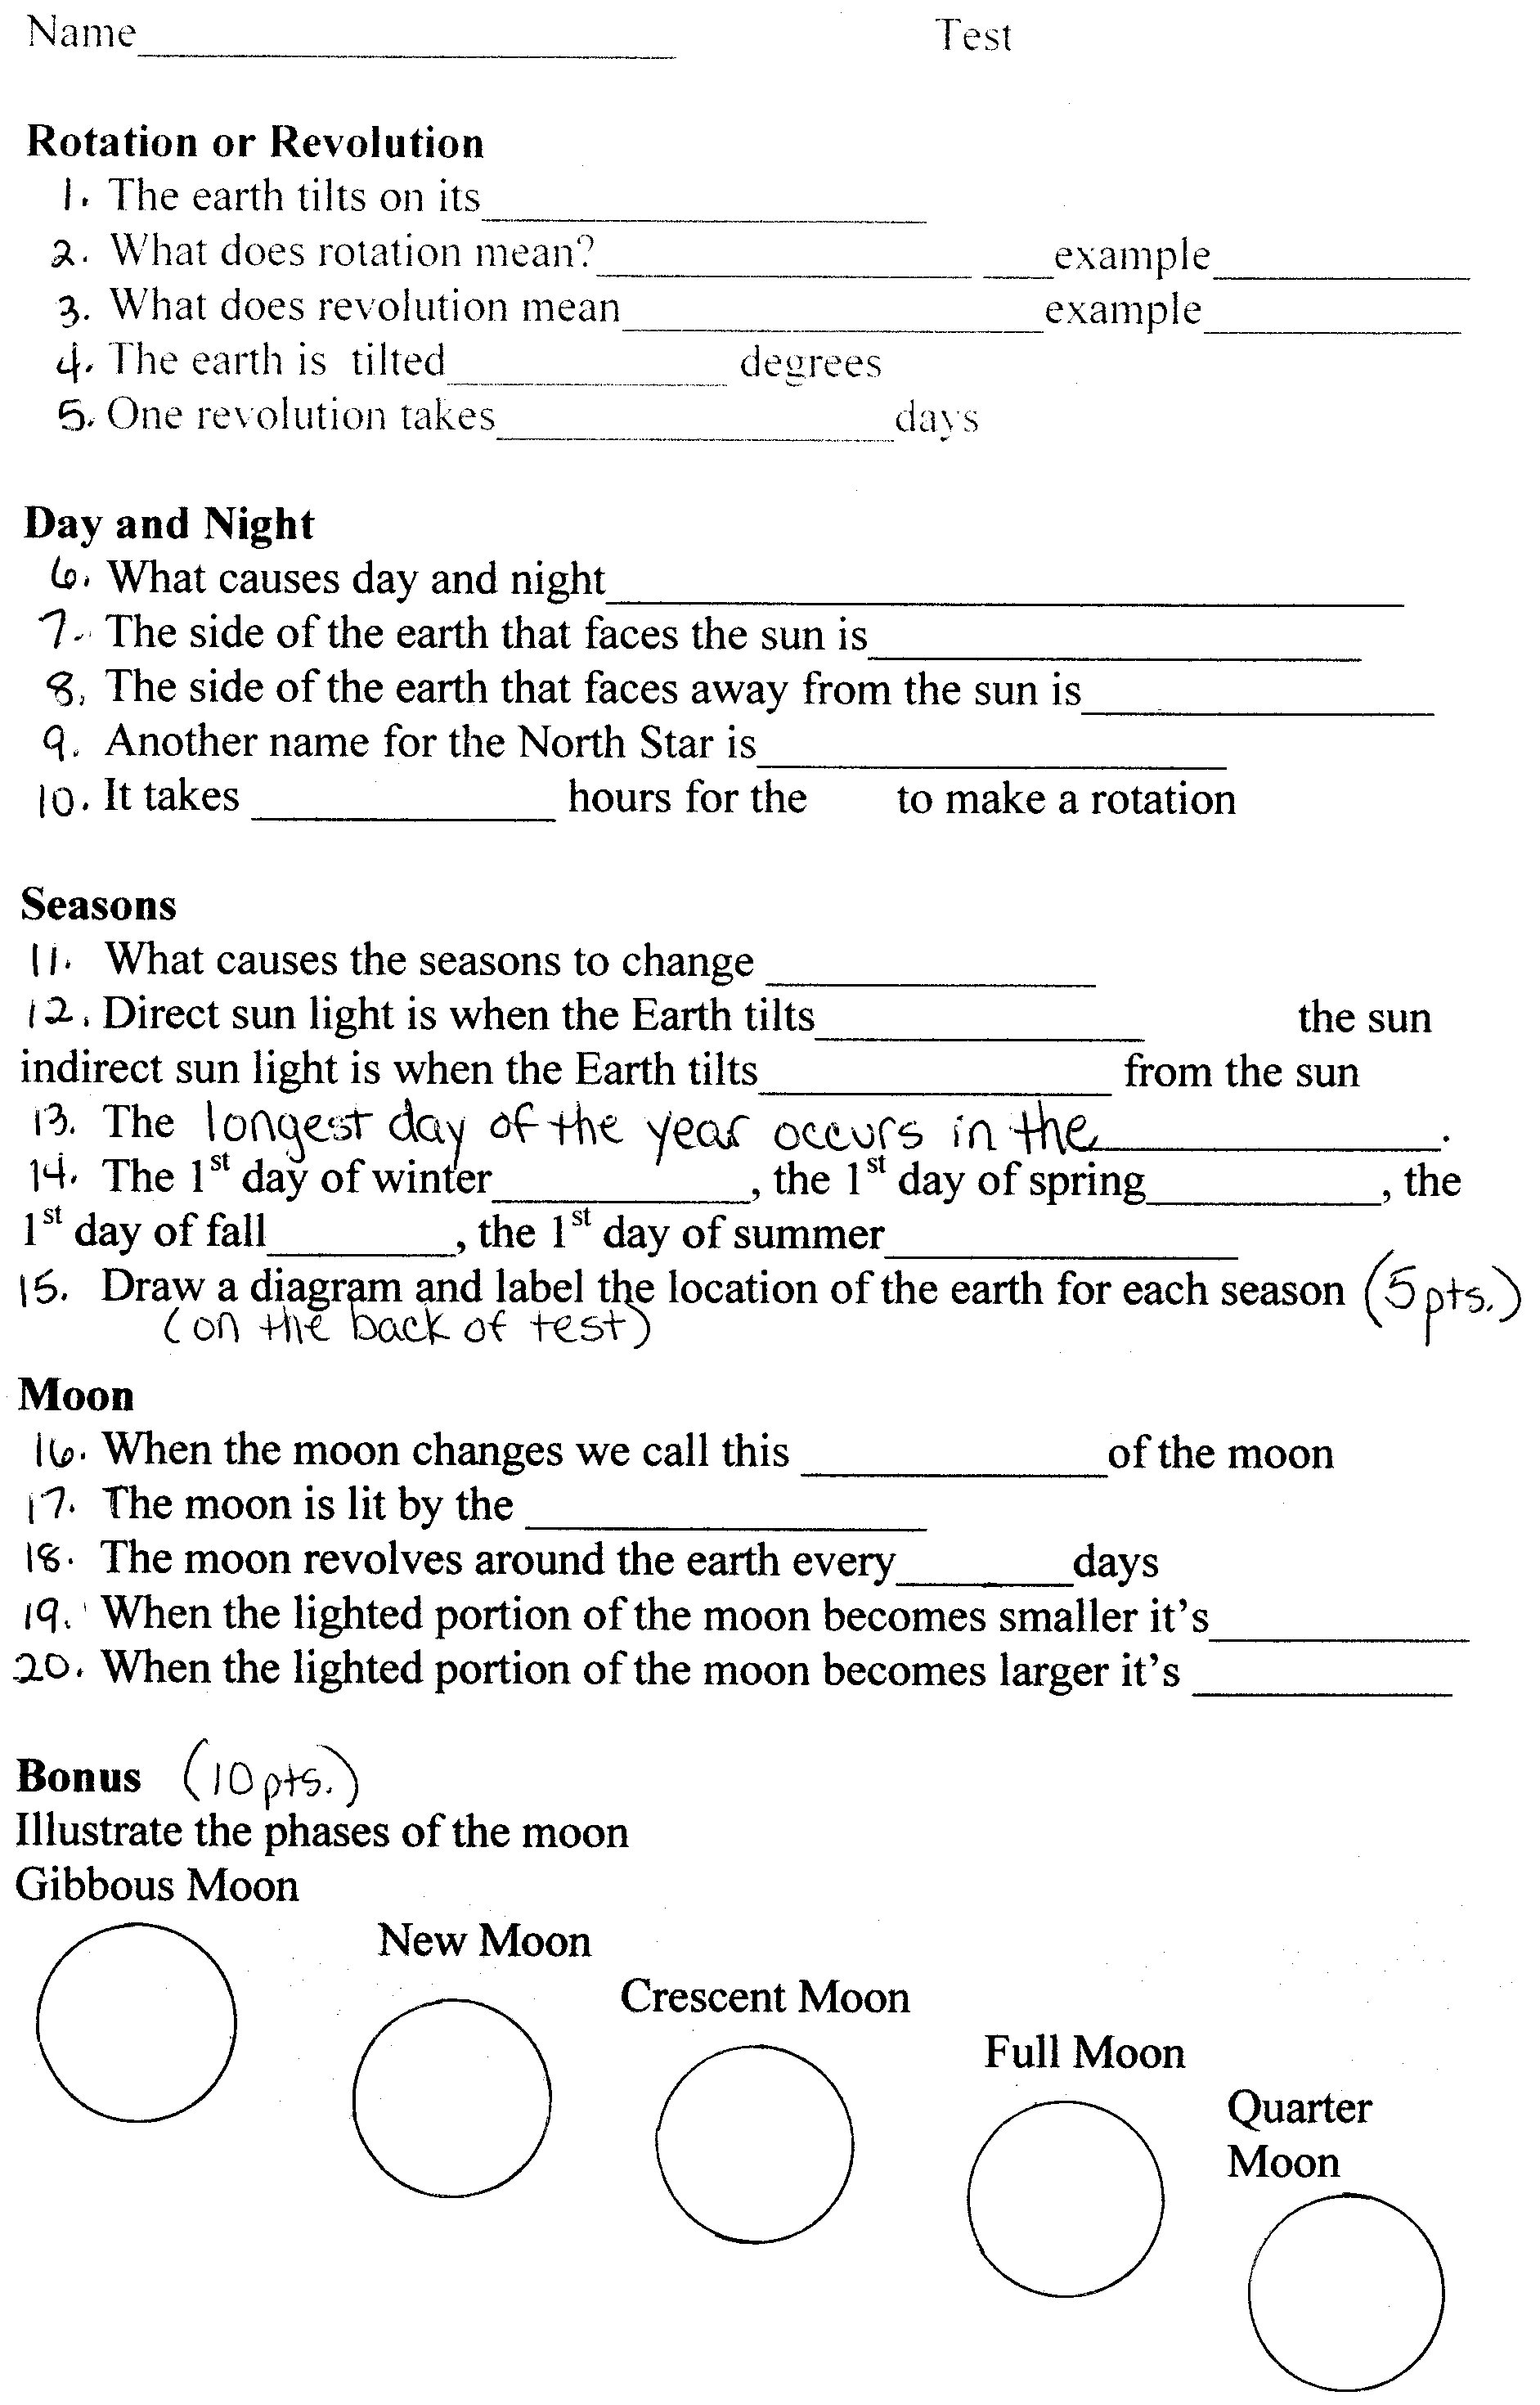 High School Civics Worksheet